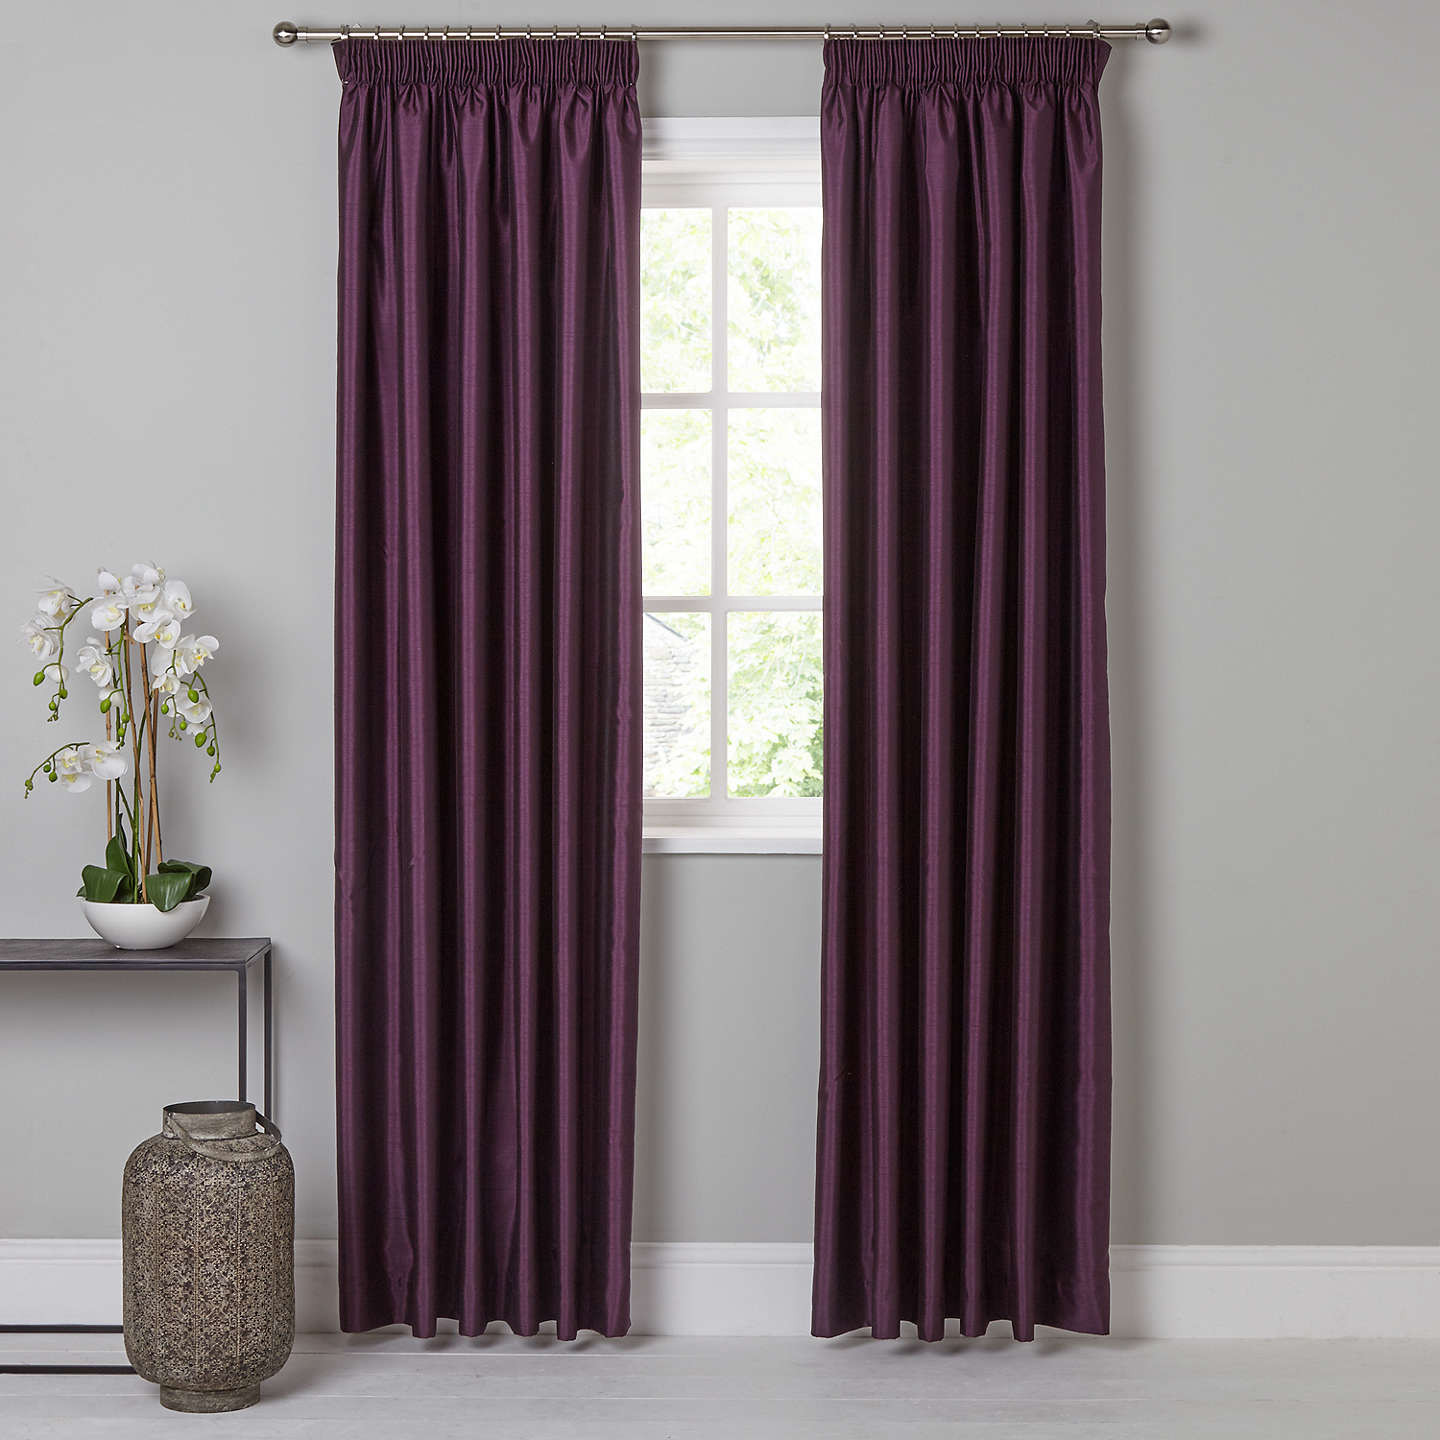 BuyJohn Lewis Faux Silk Pair Blackout Lined Pencil Pleat Curtains, Cassis, W228 x Drop 228cm Online at johnlewis.com